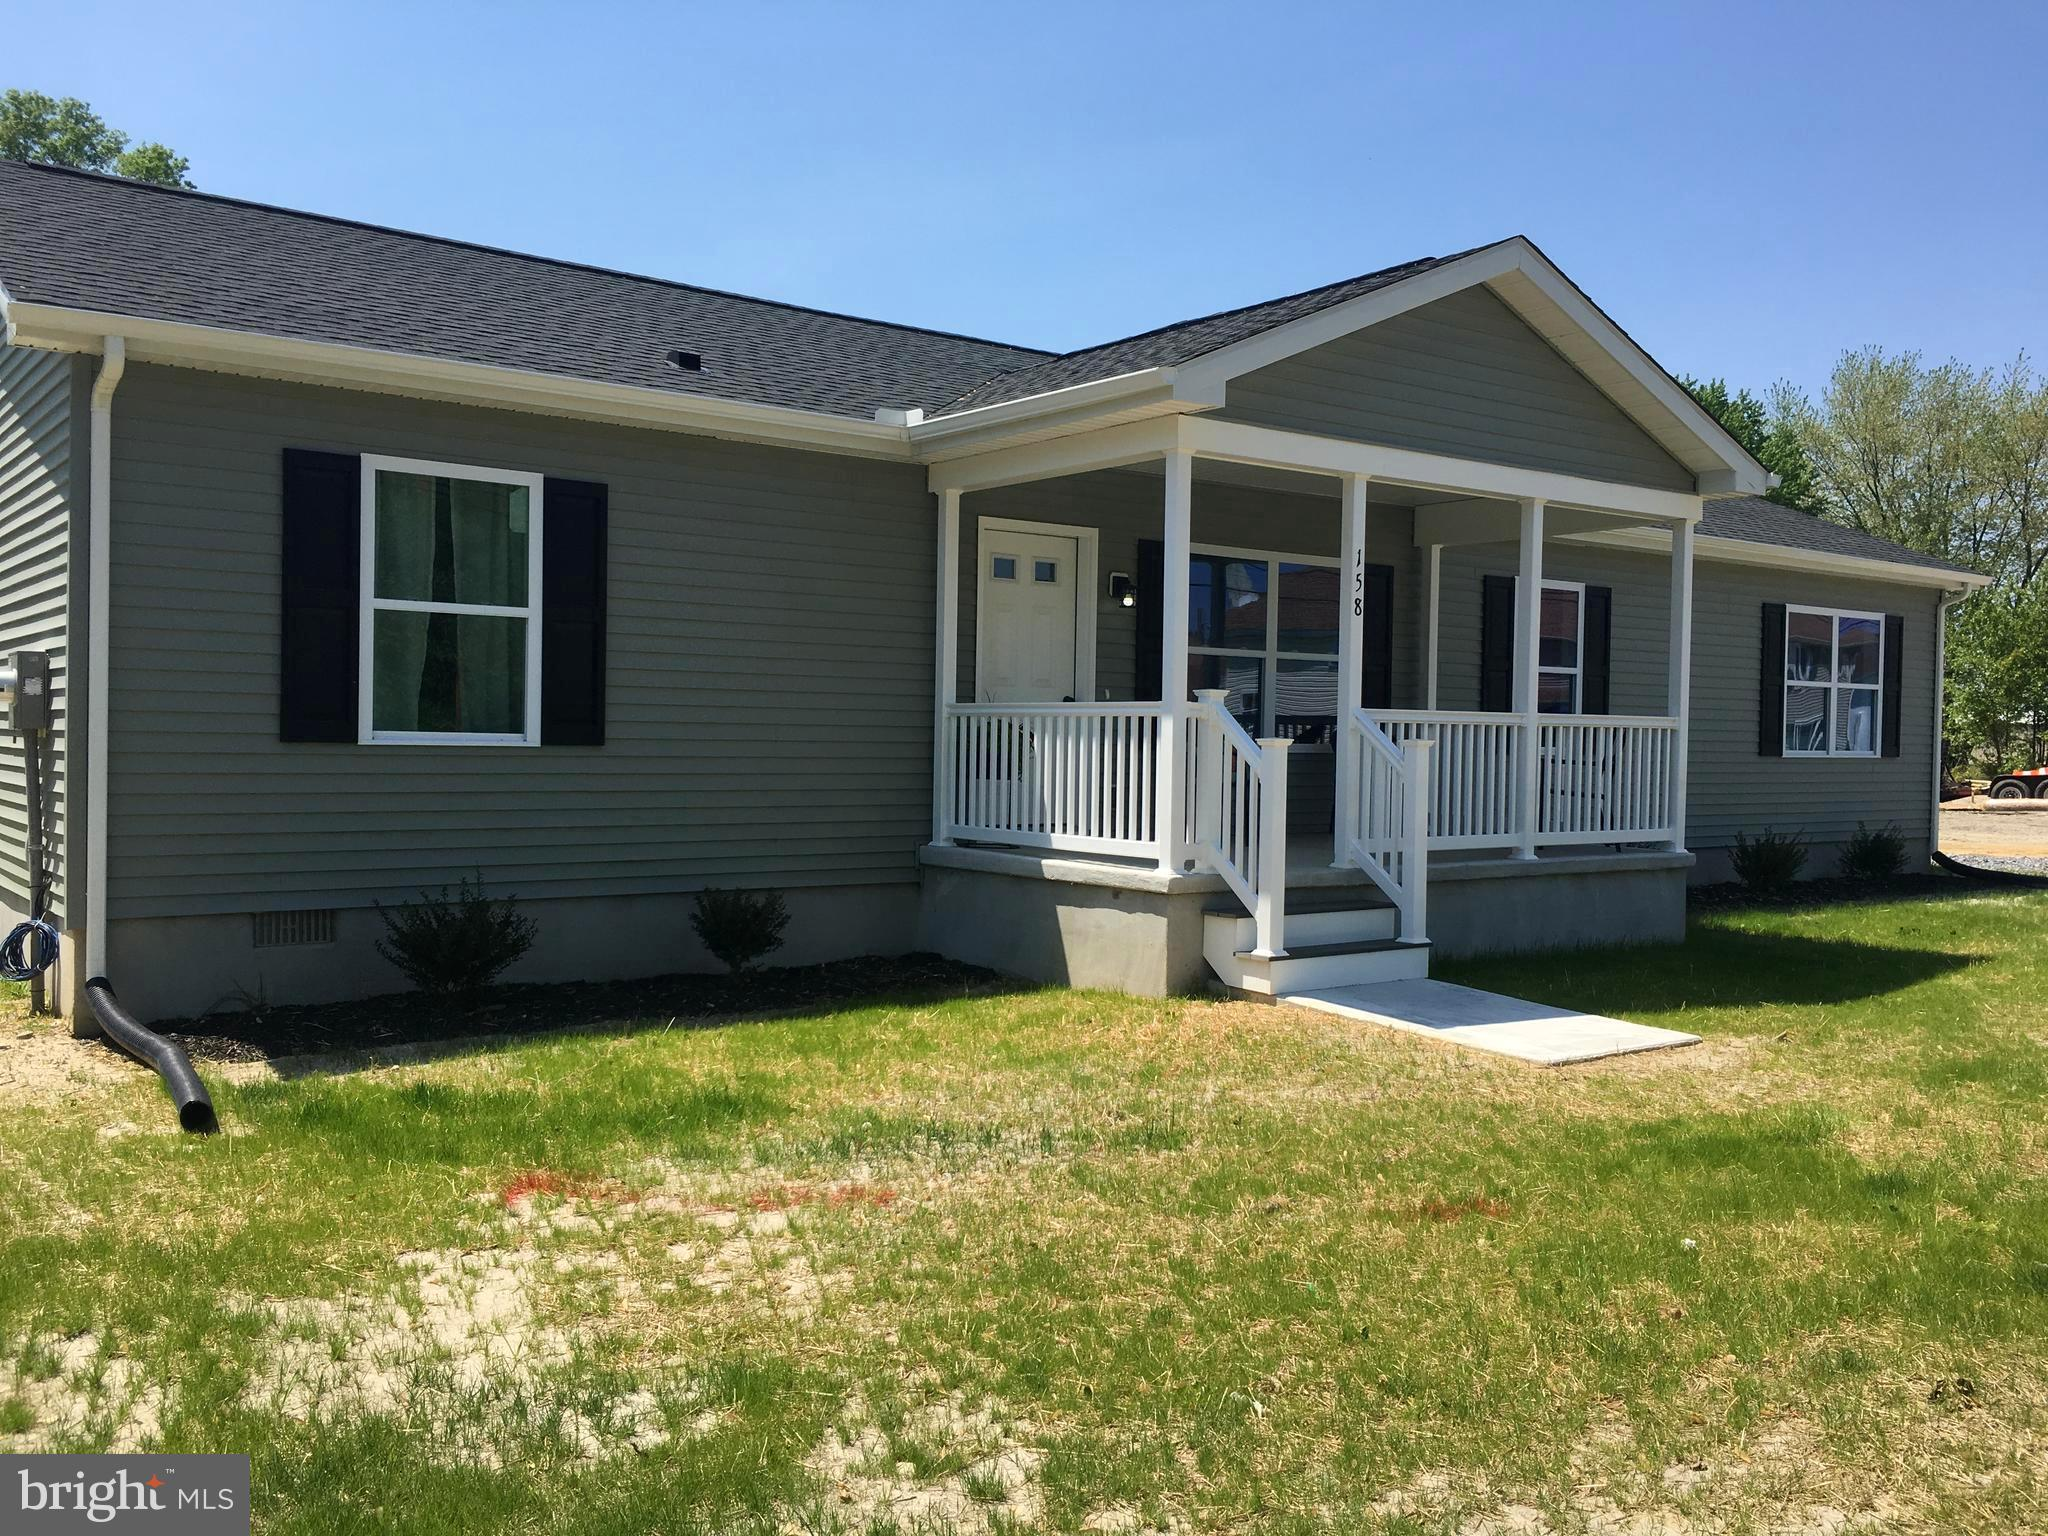 R-10867 Unique opportunity to own a brand new home on a large lot within the town limits of Hartly.  The back yard is huge and provides plenty of options.  The town is undergoing revitalization along Main Street including old homes/lots being cleared for new construction and new sidewalks.  Enjoy the benefits of small town living while still having a huge and private back yard. Sought after Hartly Elementary is just around the corner.  This spacious ranch features an open floor plan along with 3 bedrooms (all with walk in closets) and 2 full baths.  The kitchen, dining, and two living spaces are all in one large space that makes modern living and entertaining a breeze.  The kitchen includes gas cooking, stainless appliances, a large pantry, and a peninsula that's perfect as a breakfast bar.  Large front porch.  Detached, oversized 1 car garage in back.  Rear yard is huge and provides plenty of options and privacy.  Sale of this property includes parcel Tax ID # WD-10-06319-01-0700-000 (.41 acres).  The owners had the back parcel annexed within the town limits and both are being sold with this listing.  Total acreage for both parcels is .77.